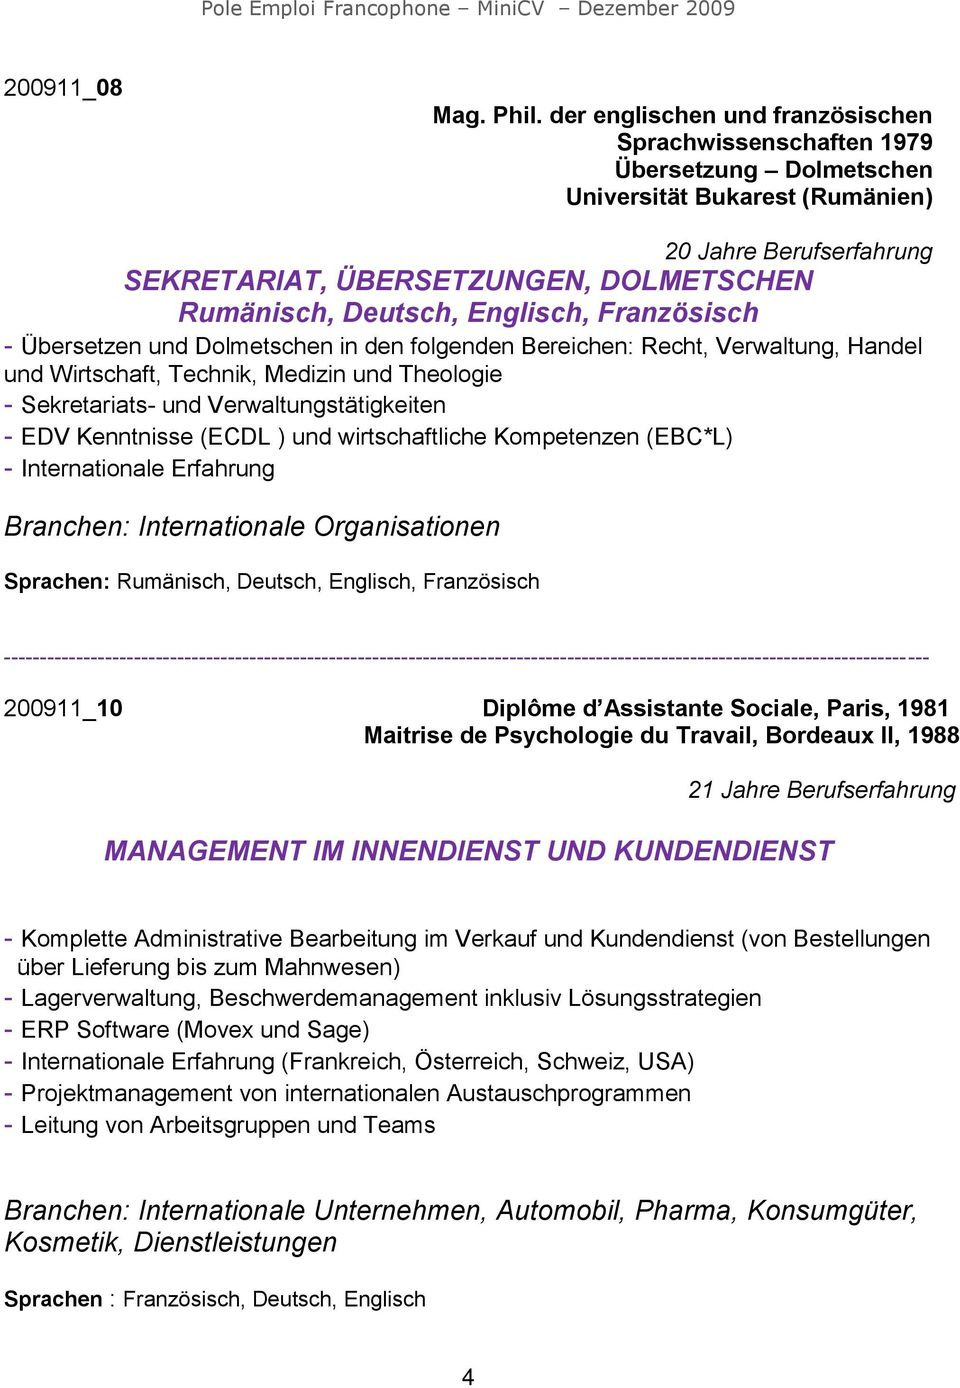 Großartig International Development Projektmanagement Lebenslauf ...